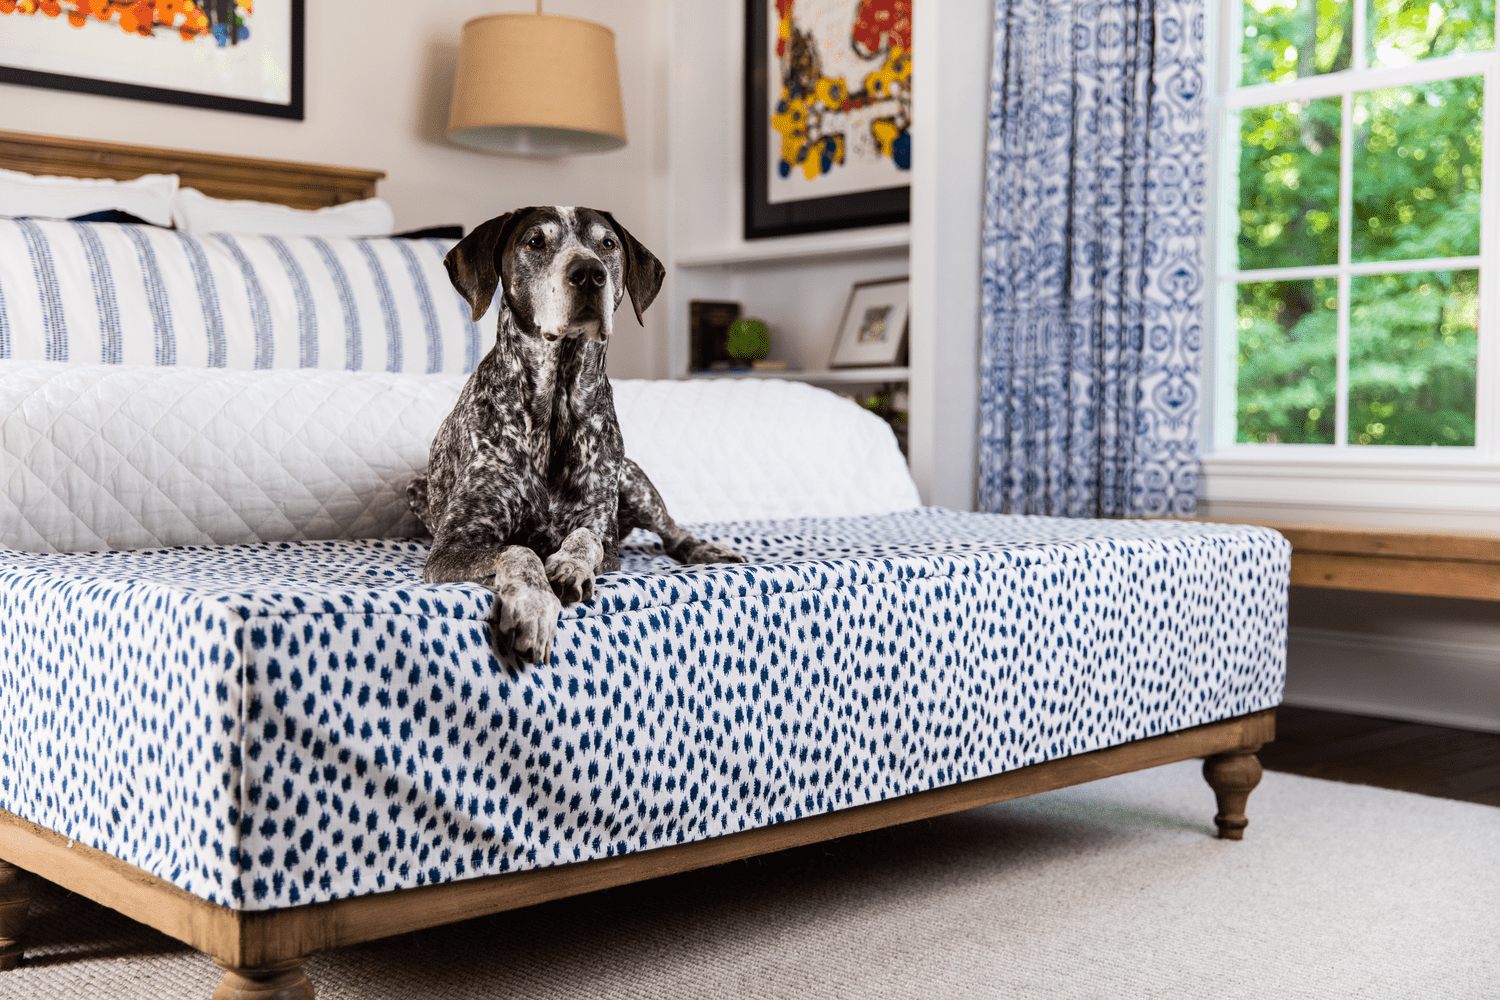 Strong, bold blues can be used as accent colors in traditional, transitional and modern interior schemes as pillows, draperies, upholstered furniture and more.